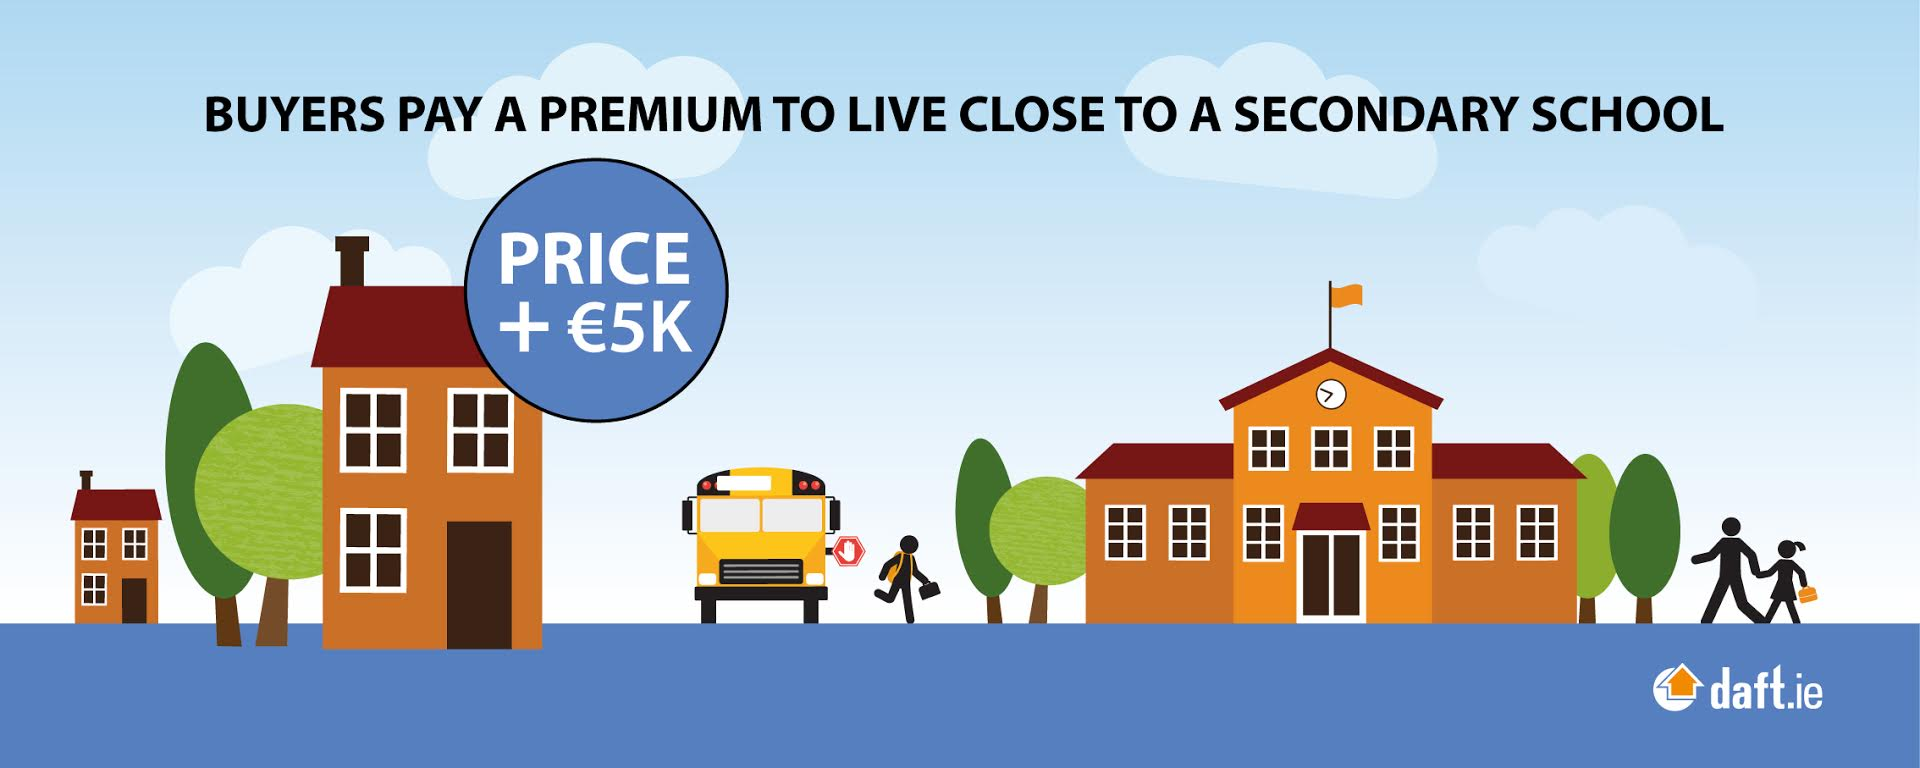 Buyers pay a premium to live close to a secondary school